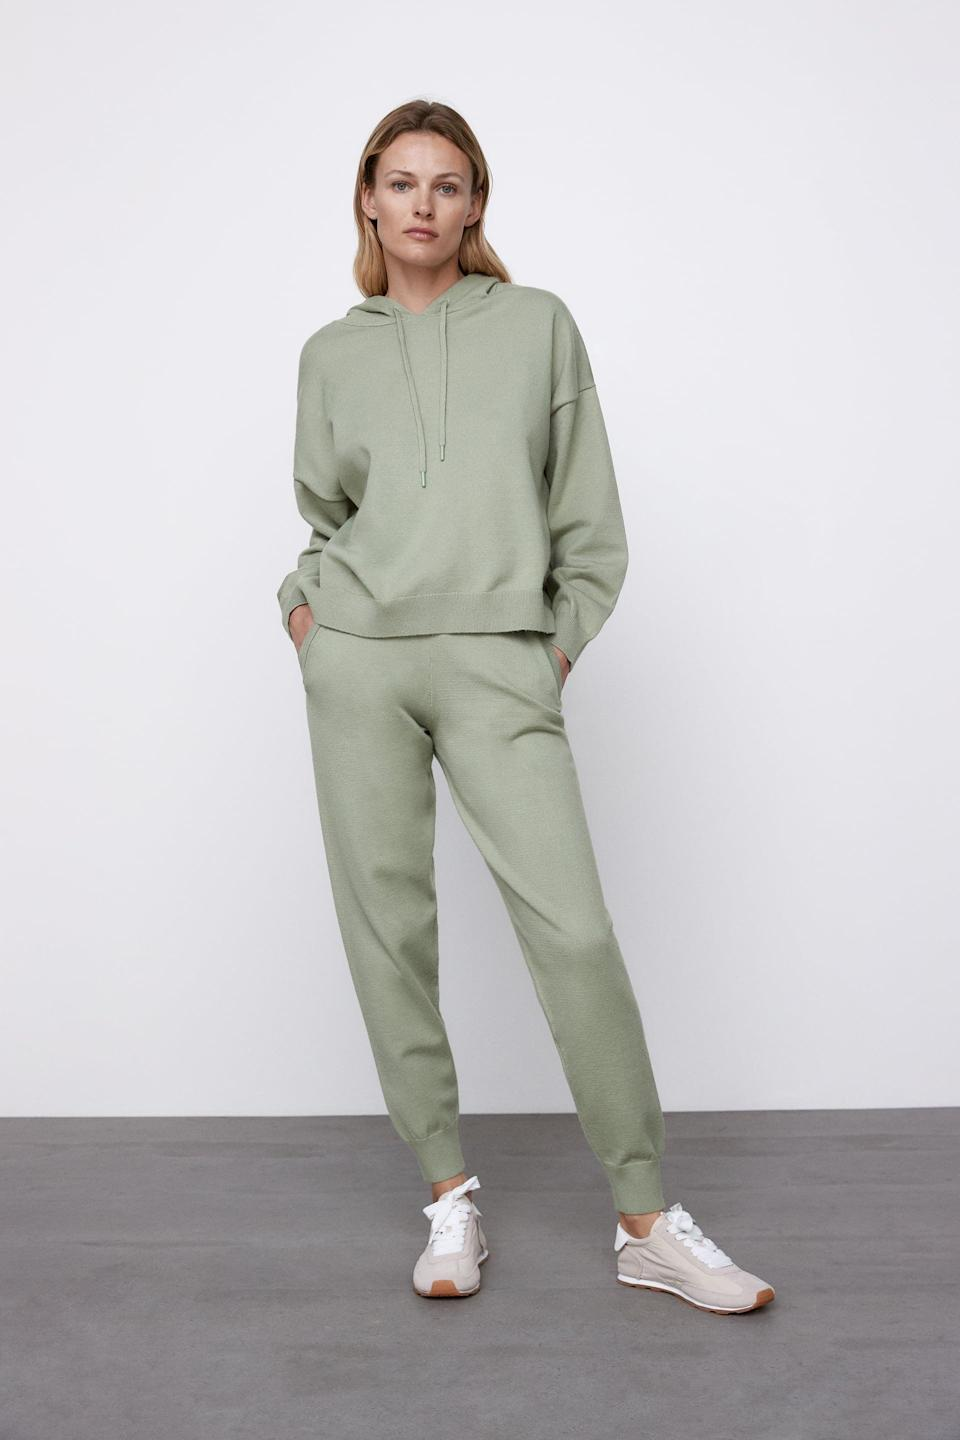 <p>We're loving the color of this <span>Zara Knit Jogger Pants</span> ($40) and <span>Hooded Knit Sweatshirt</span> ($40).</p>